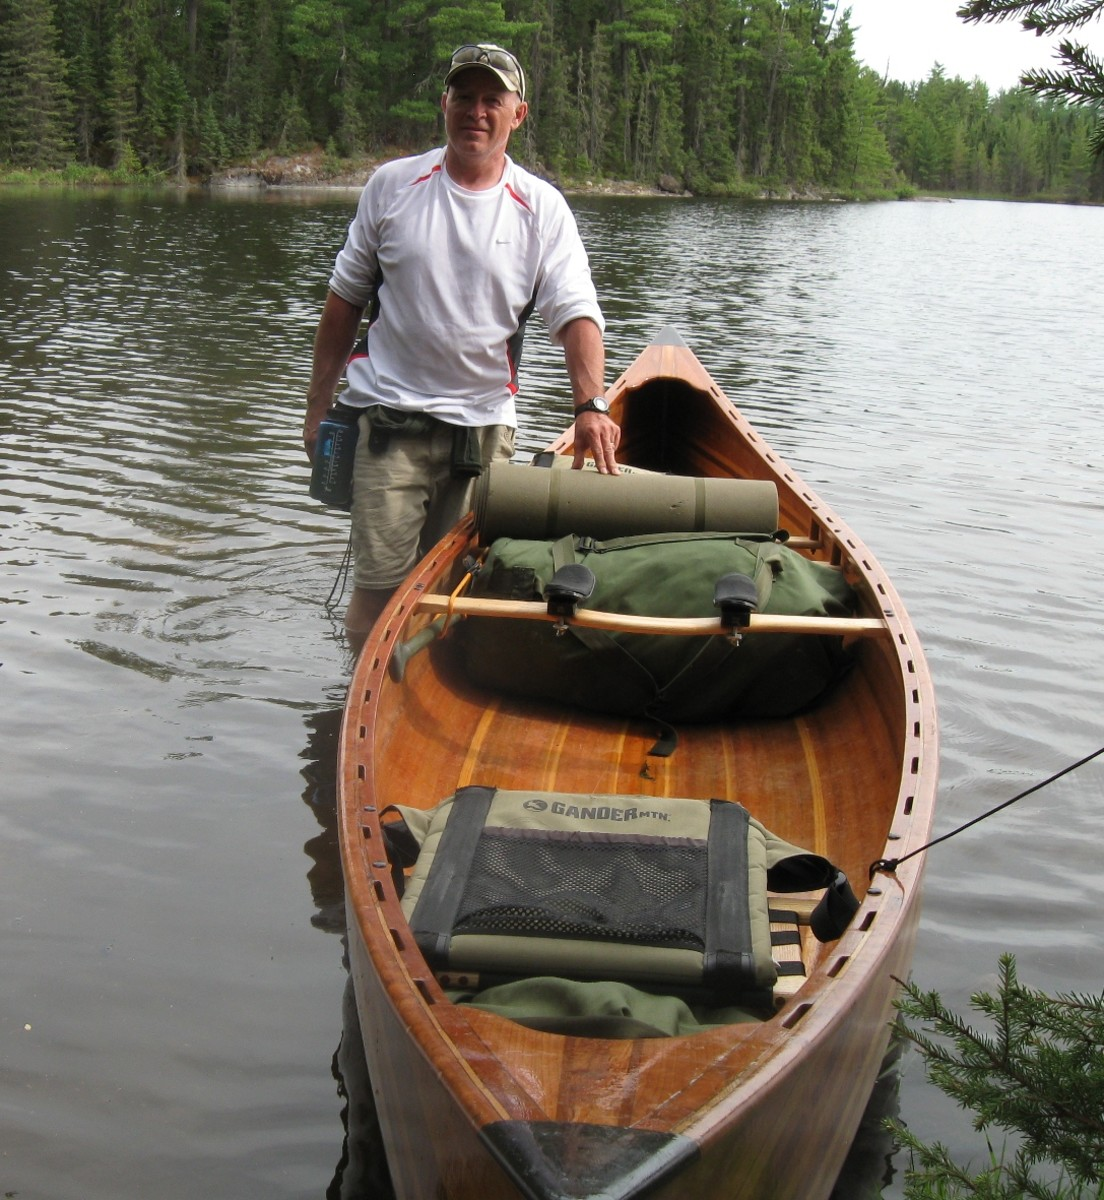 Building a Cedar-Strip Canoe: The Basics